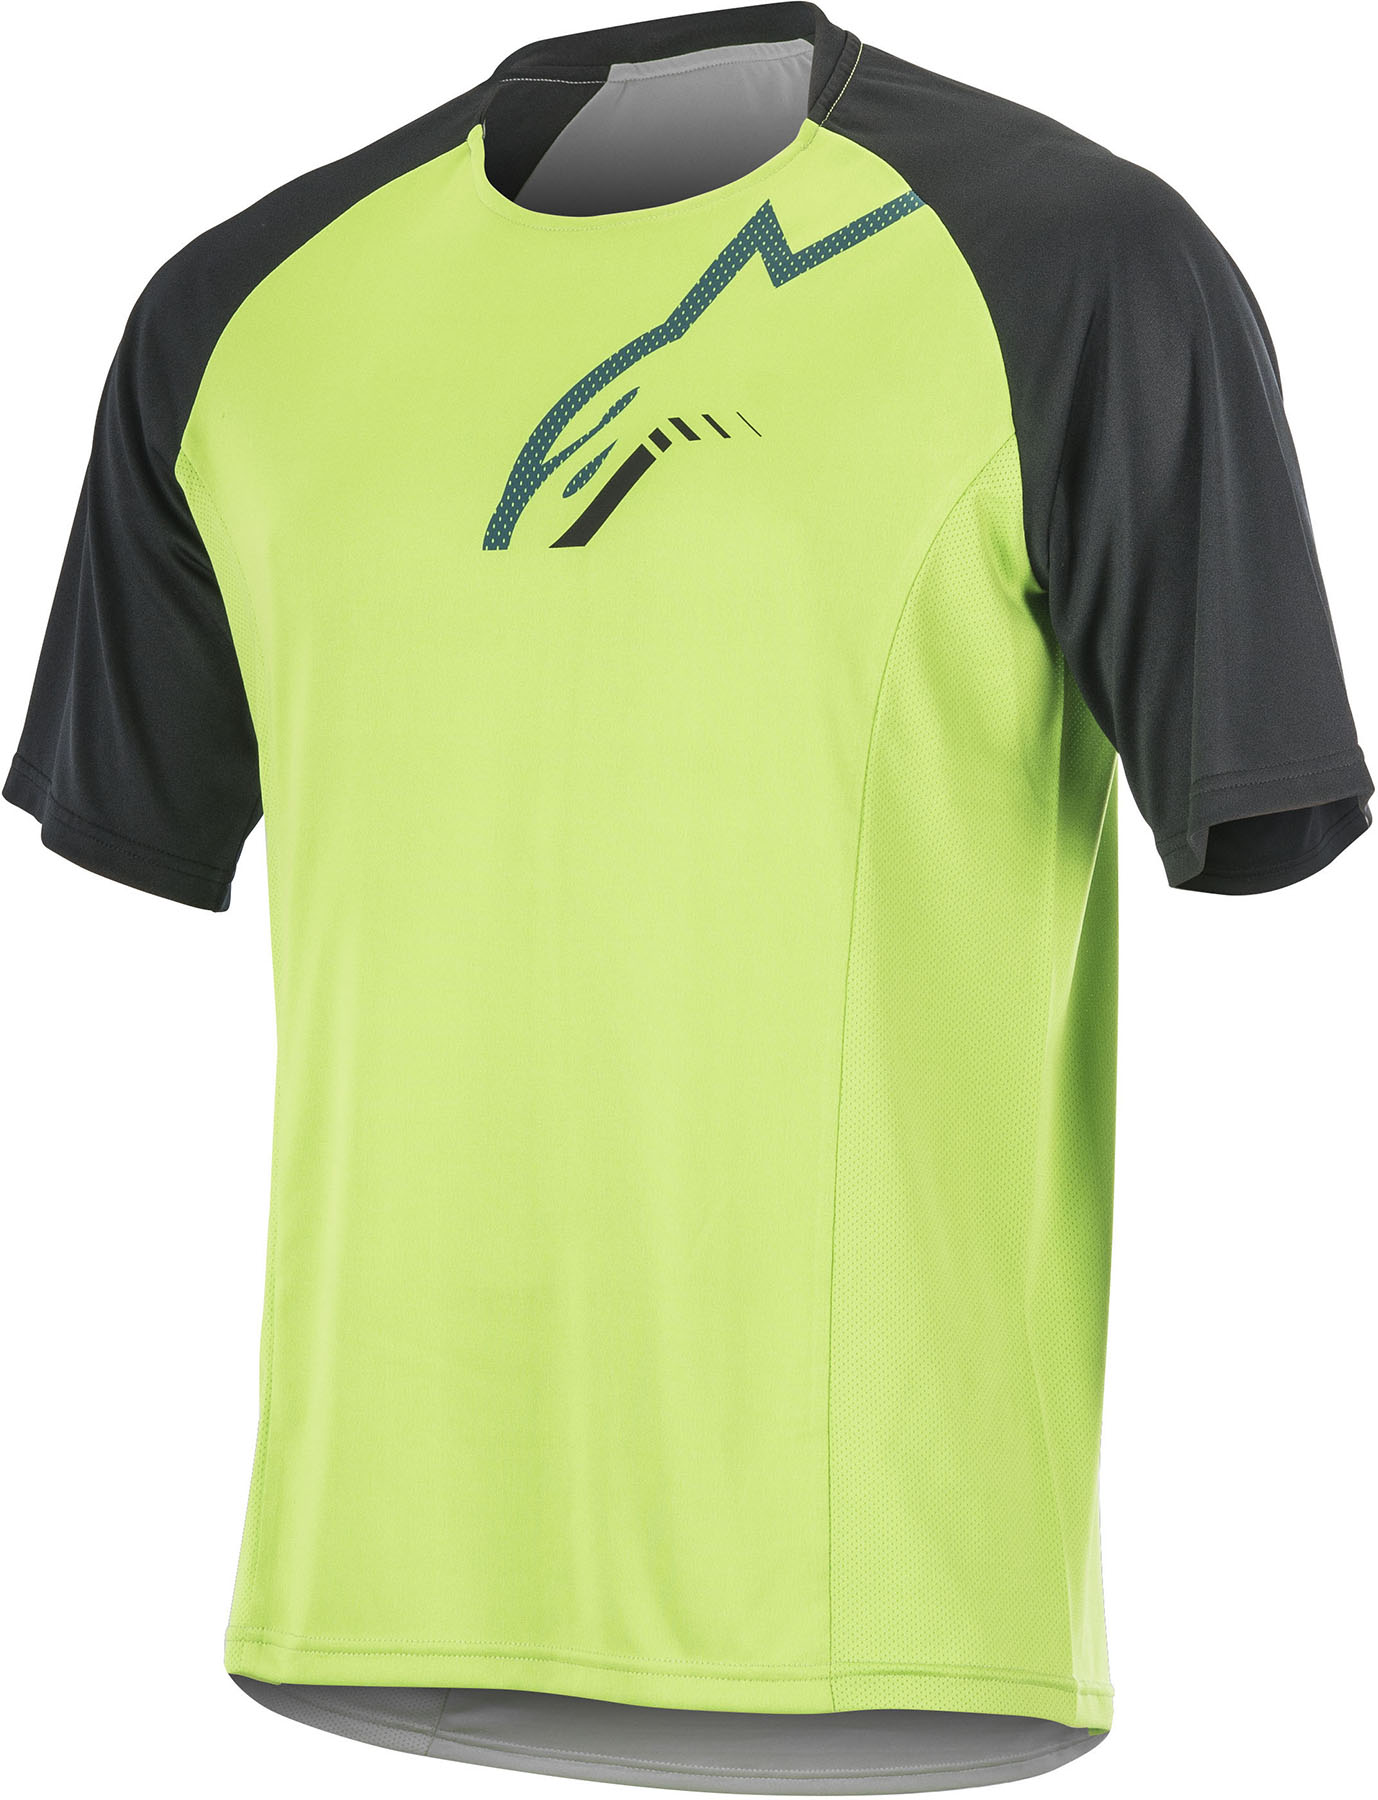 Alpinestars Trailstar Short Sleeve Jersey | Jerseys